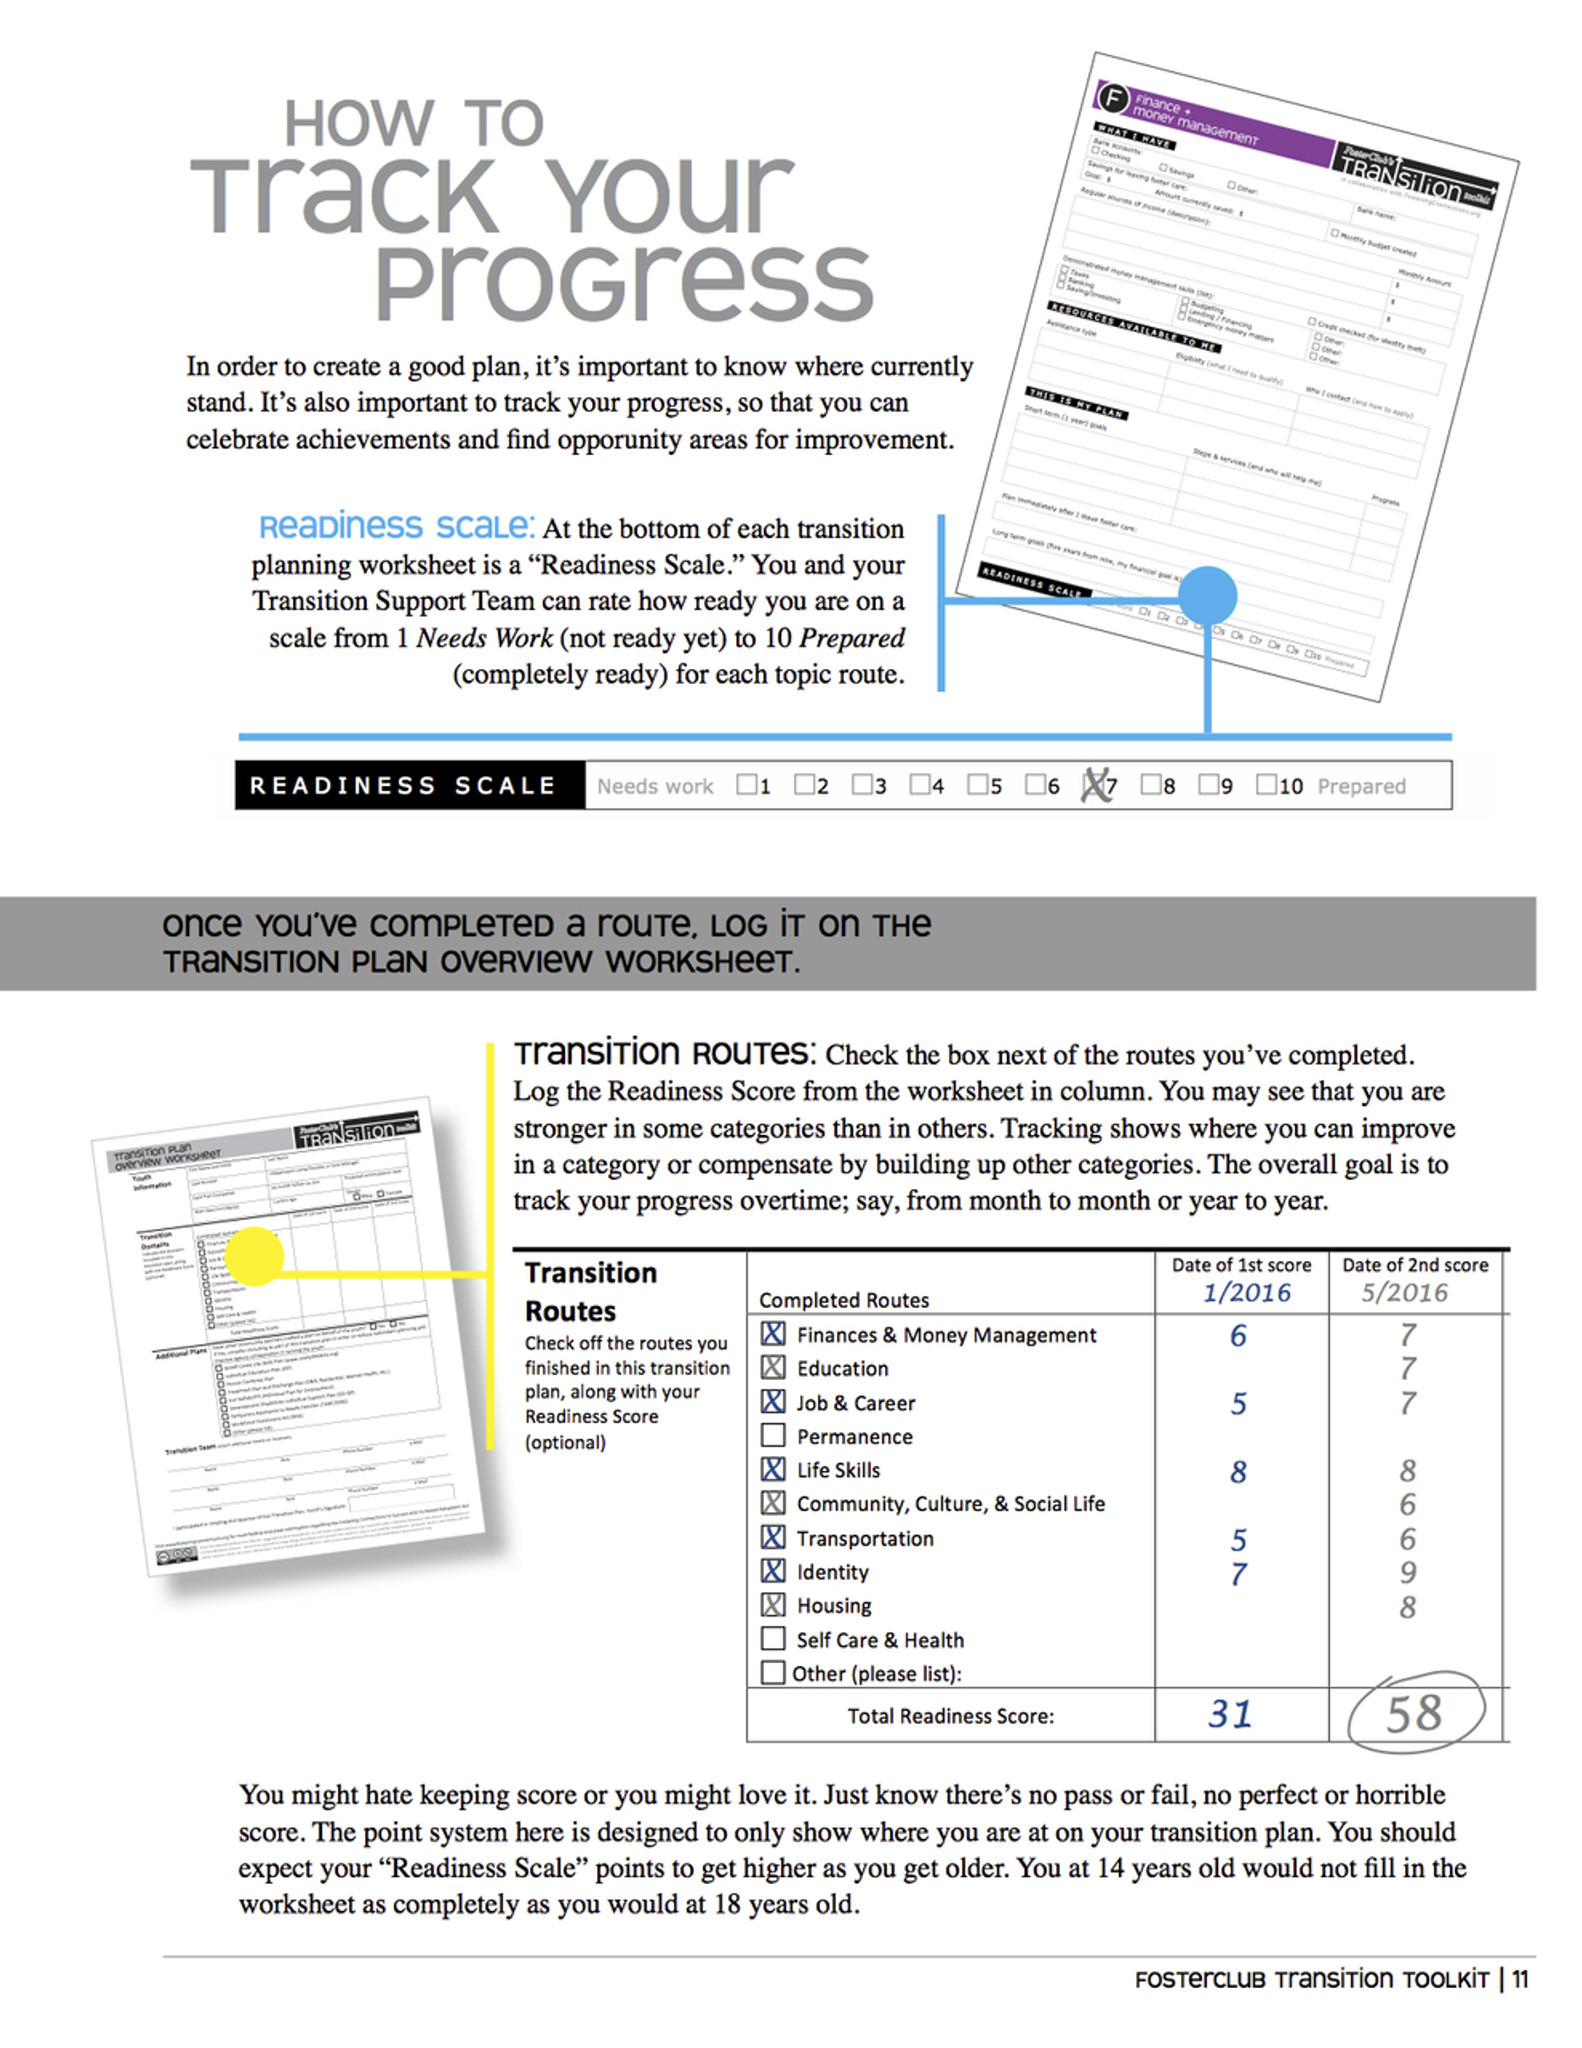 Workbooks self care worksheets : Transition Toolkit - Store | FosterClub